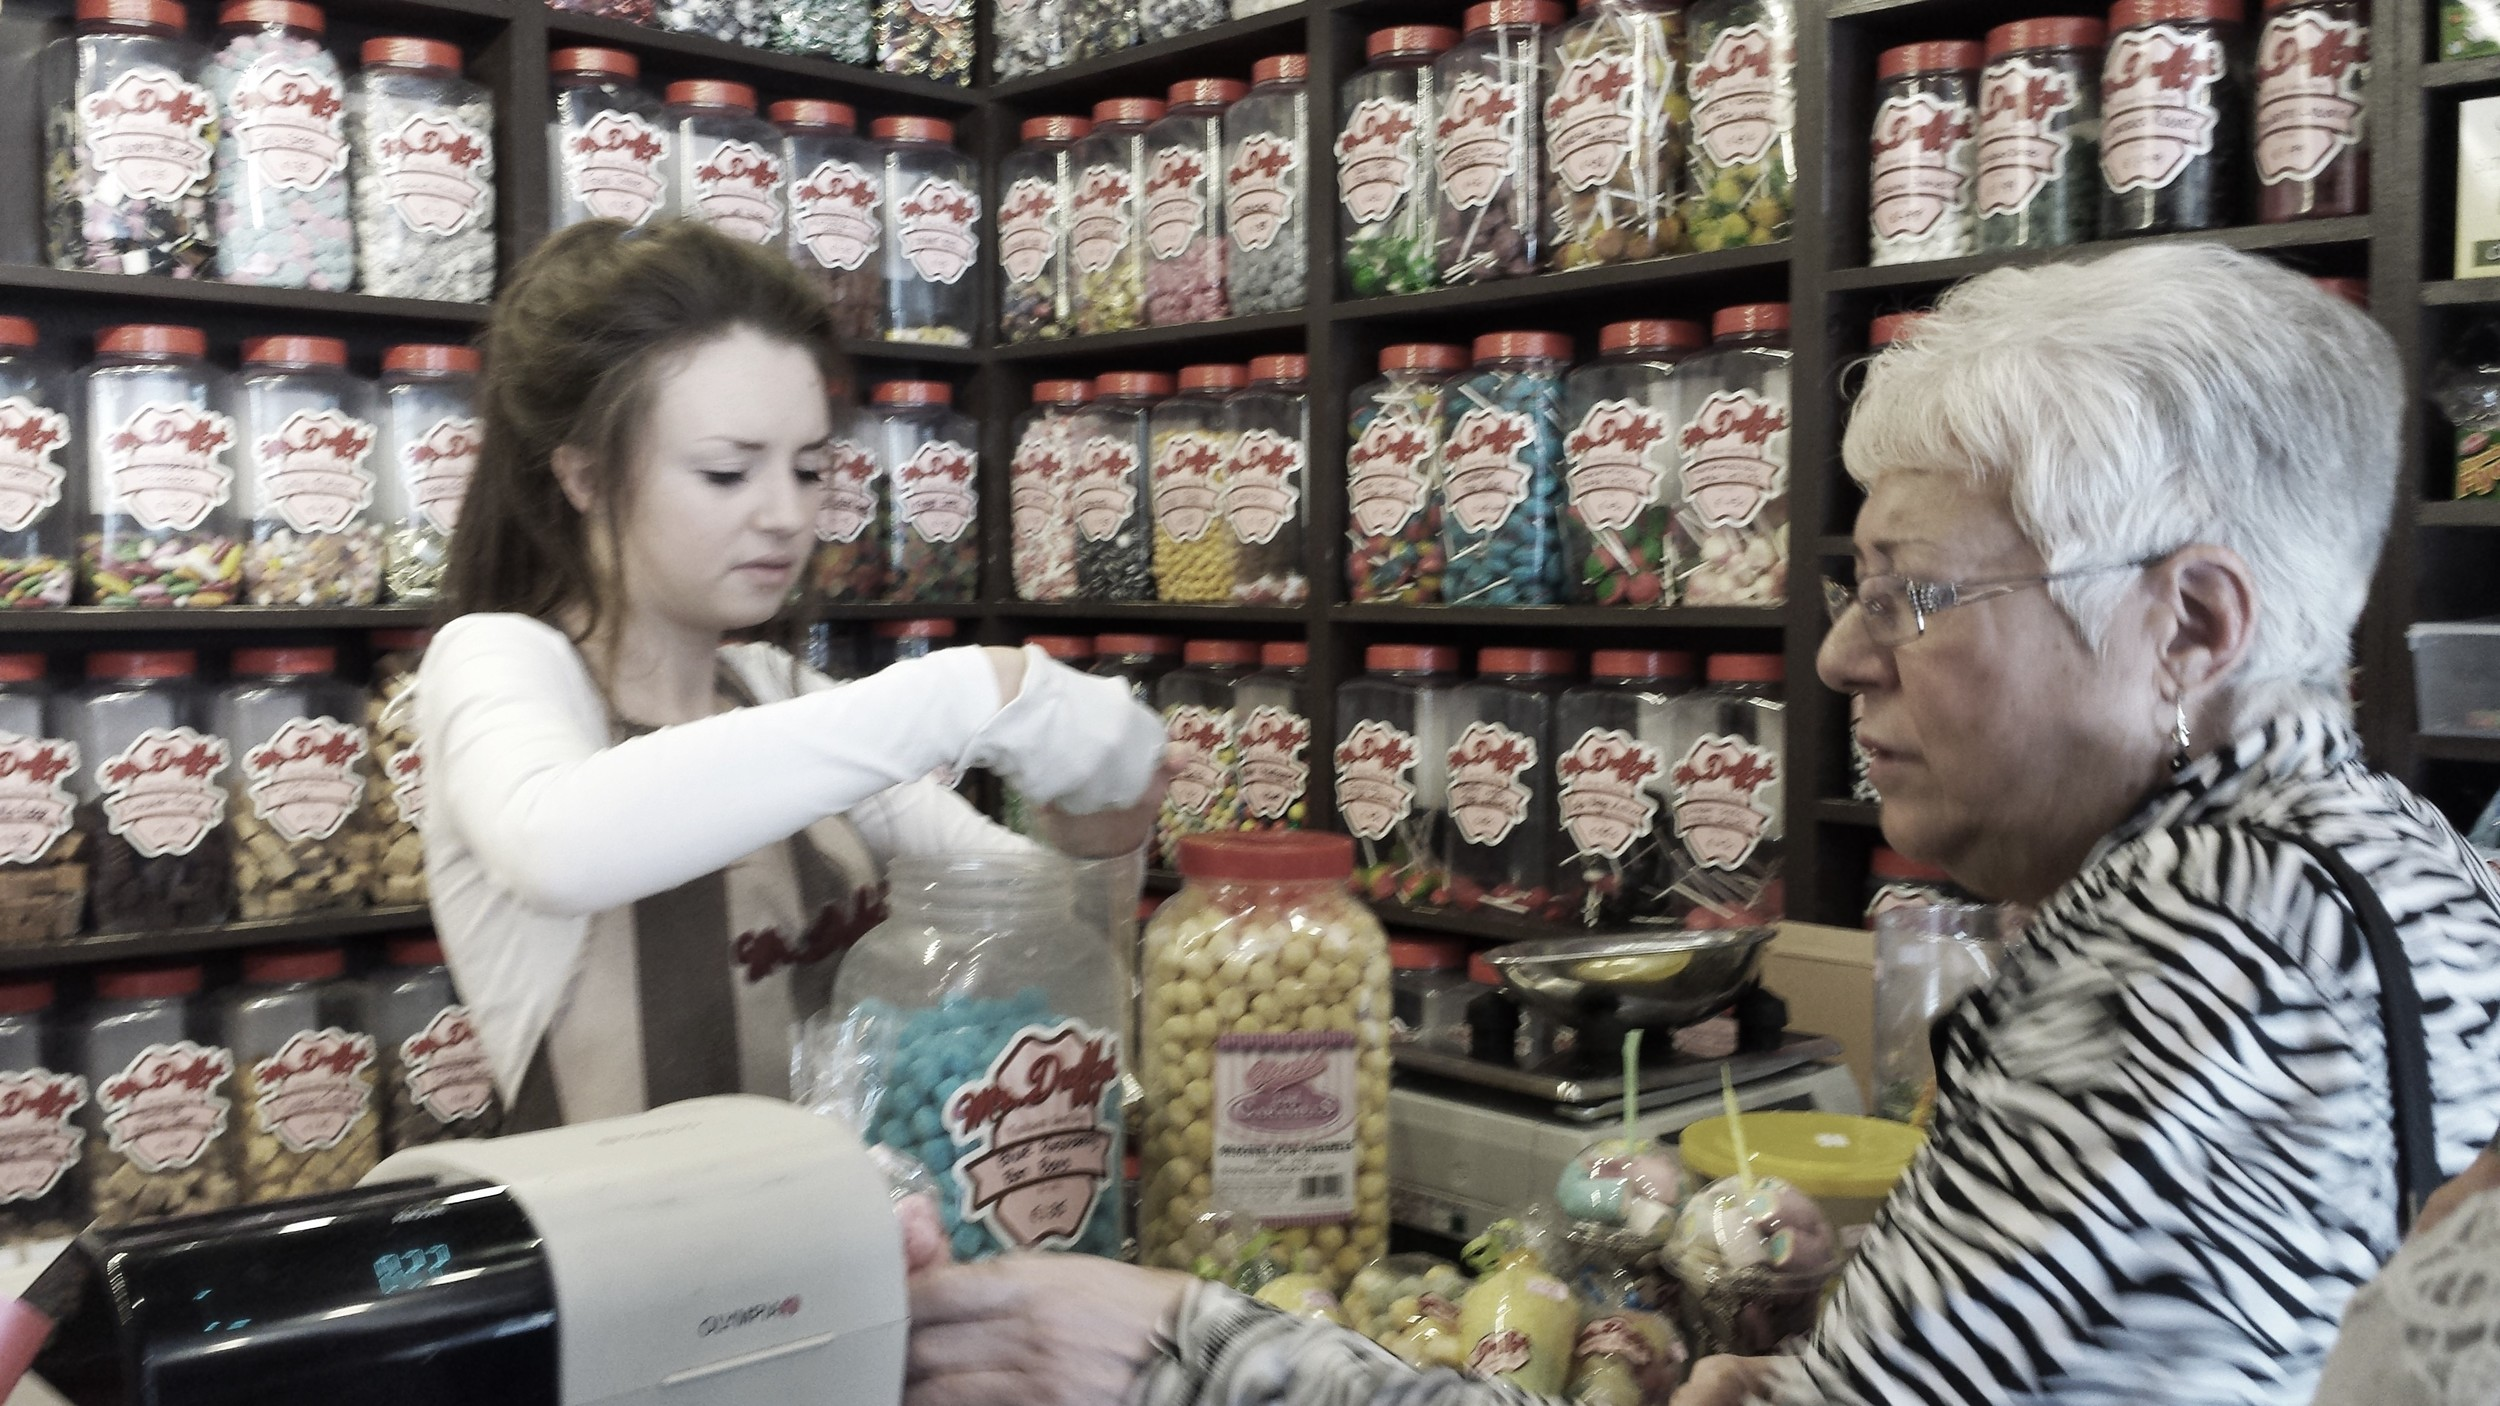 Grandma in the sweet shop